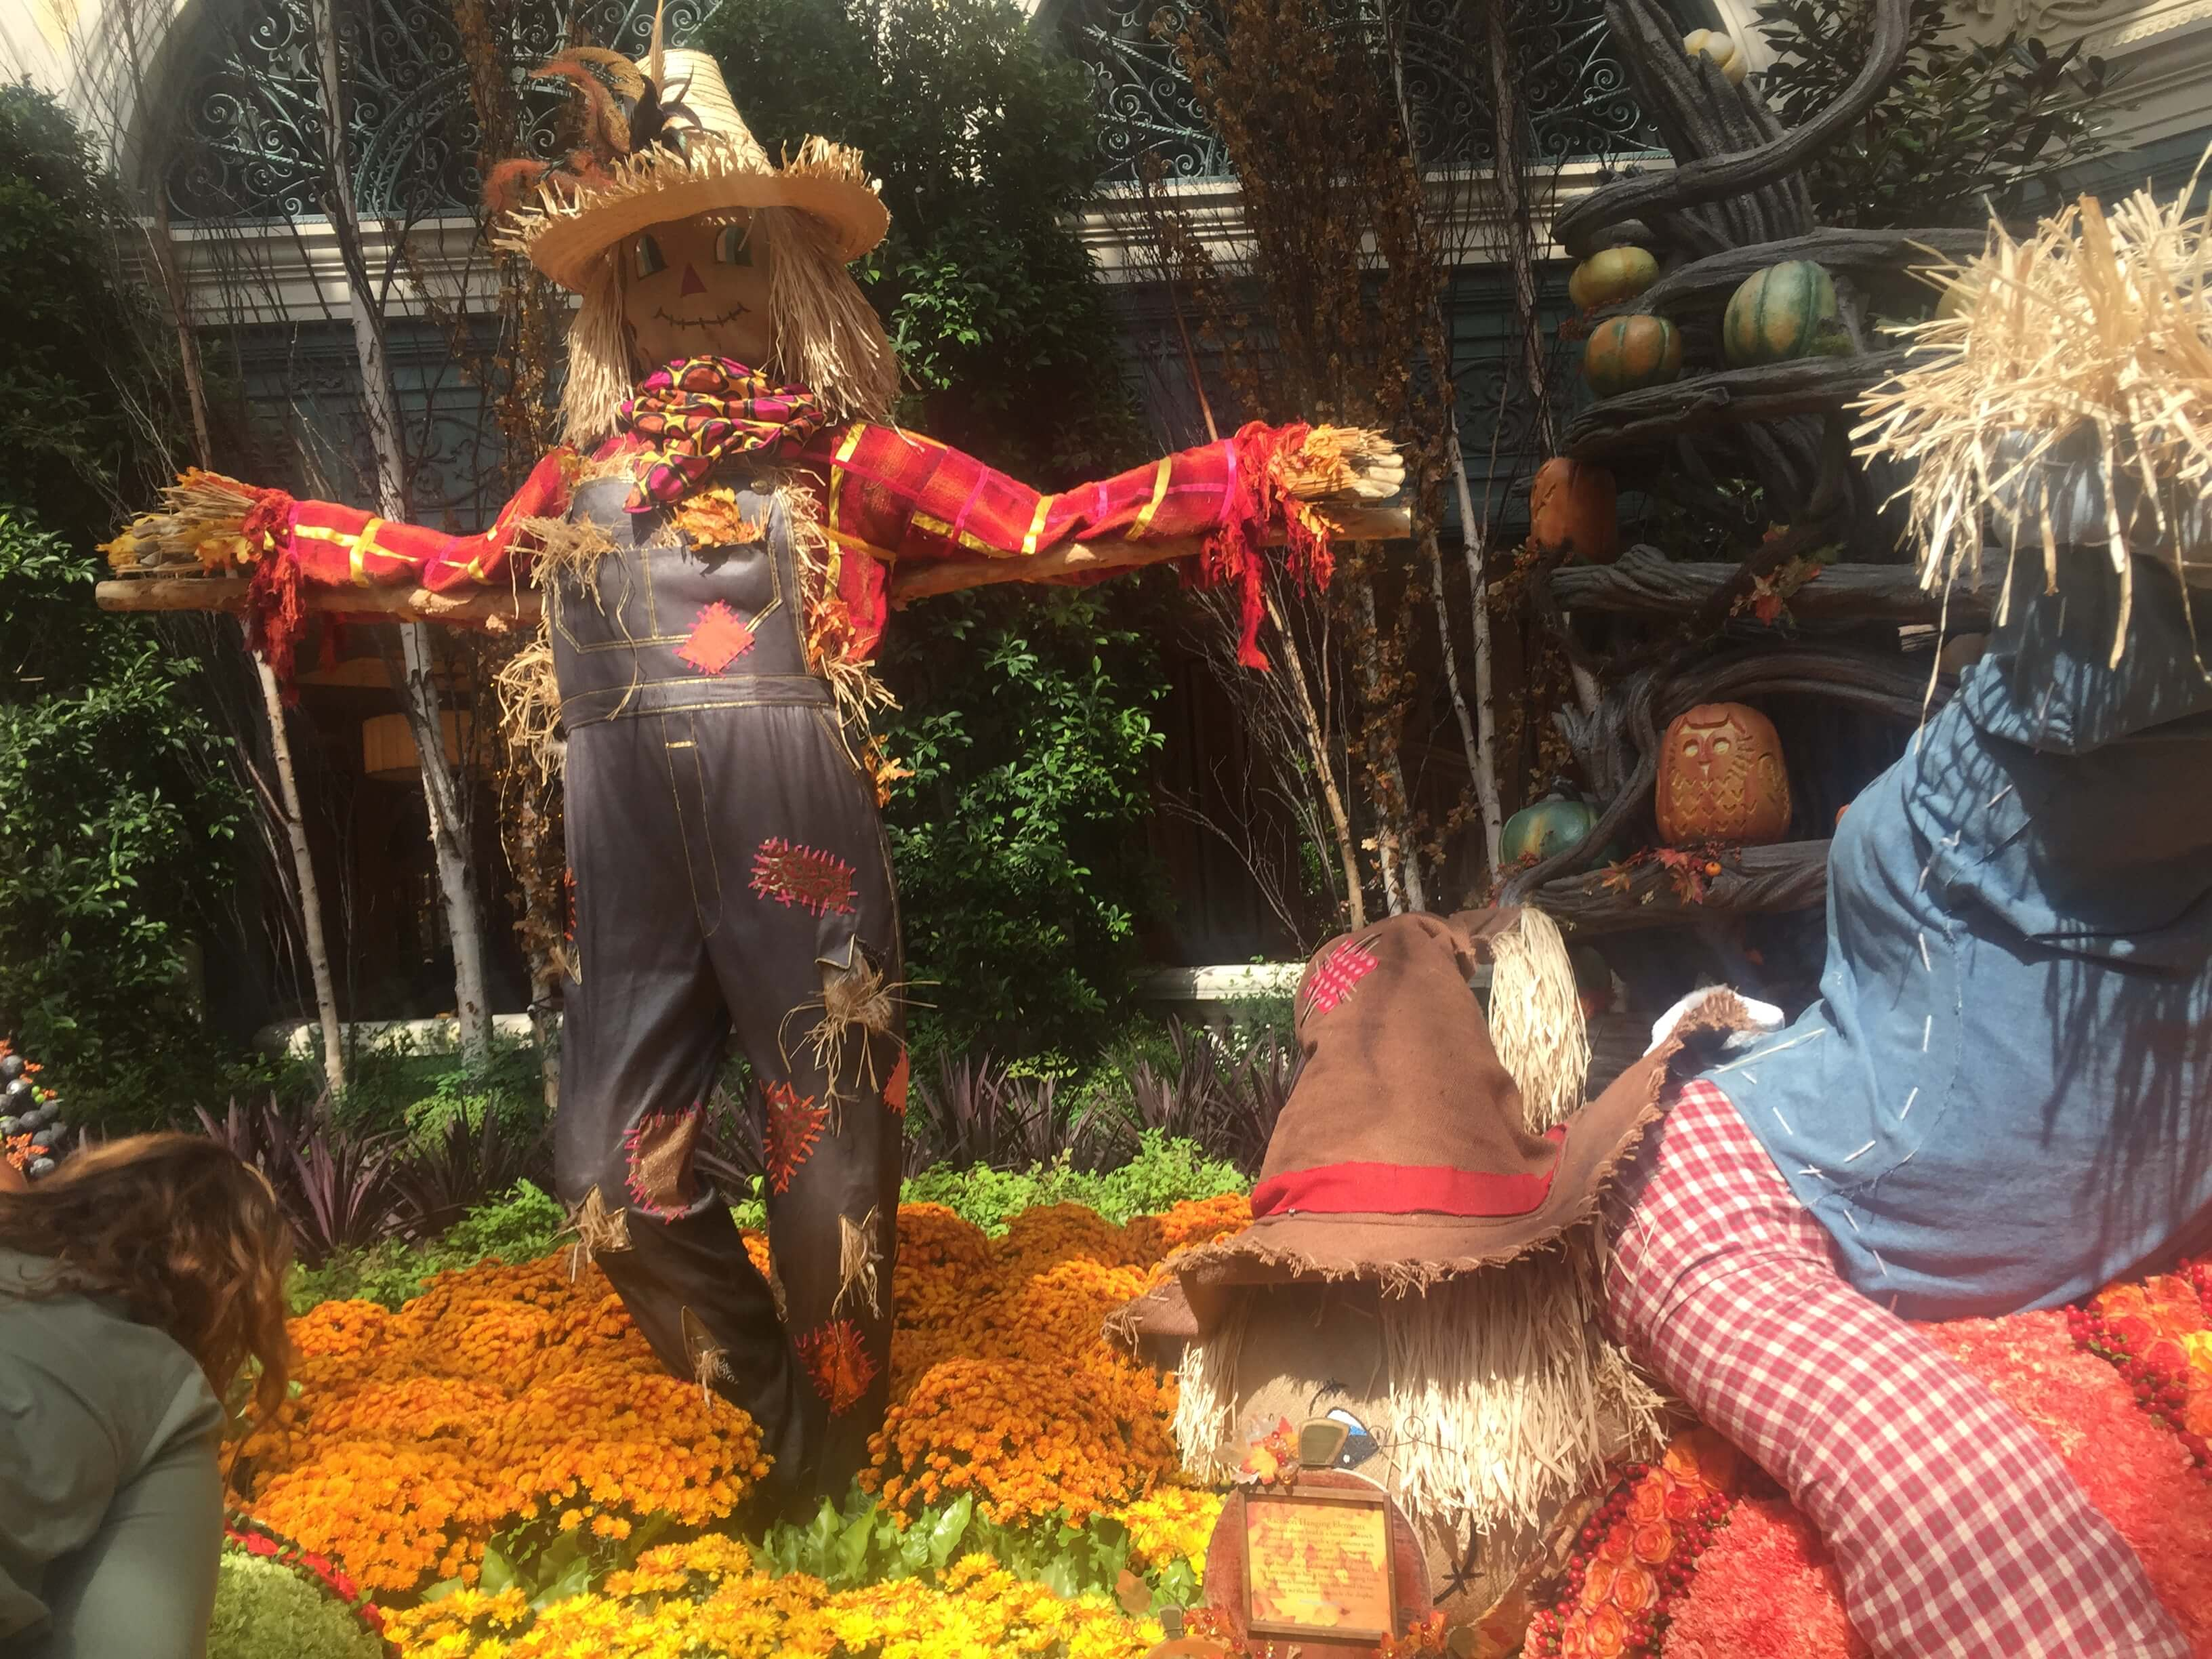 Fall Display at The Botanical Gardens at The Bellagio